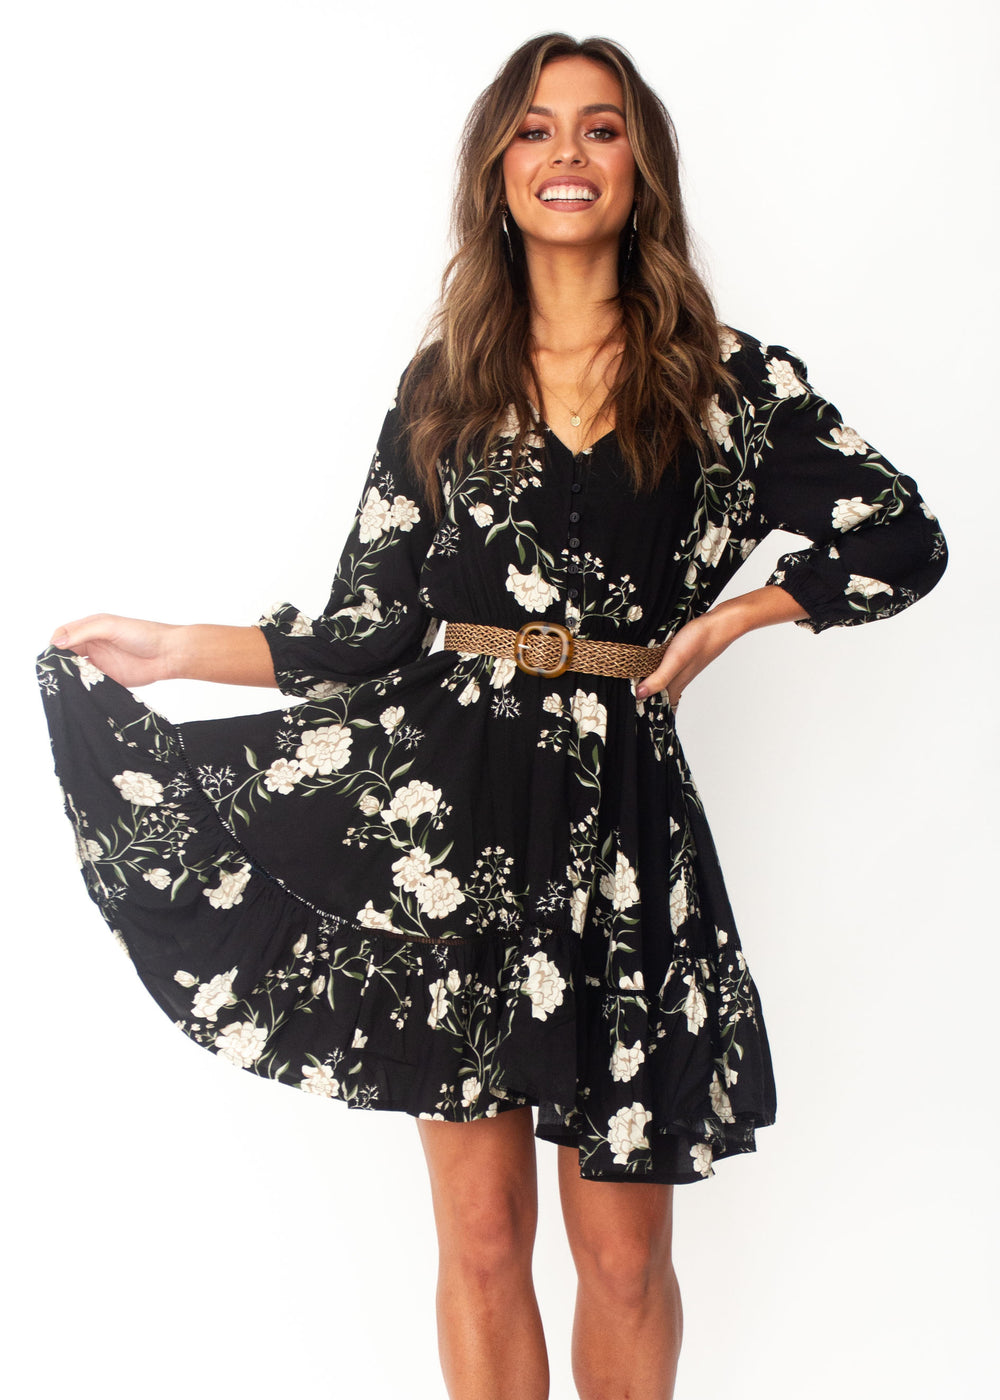 Women's Cianna Swing Dress - Alliah - Jaase - Black Floral